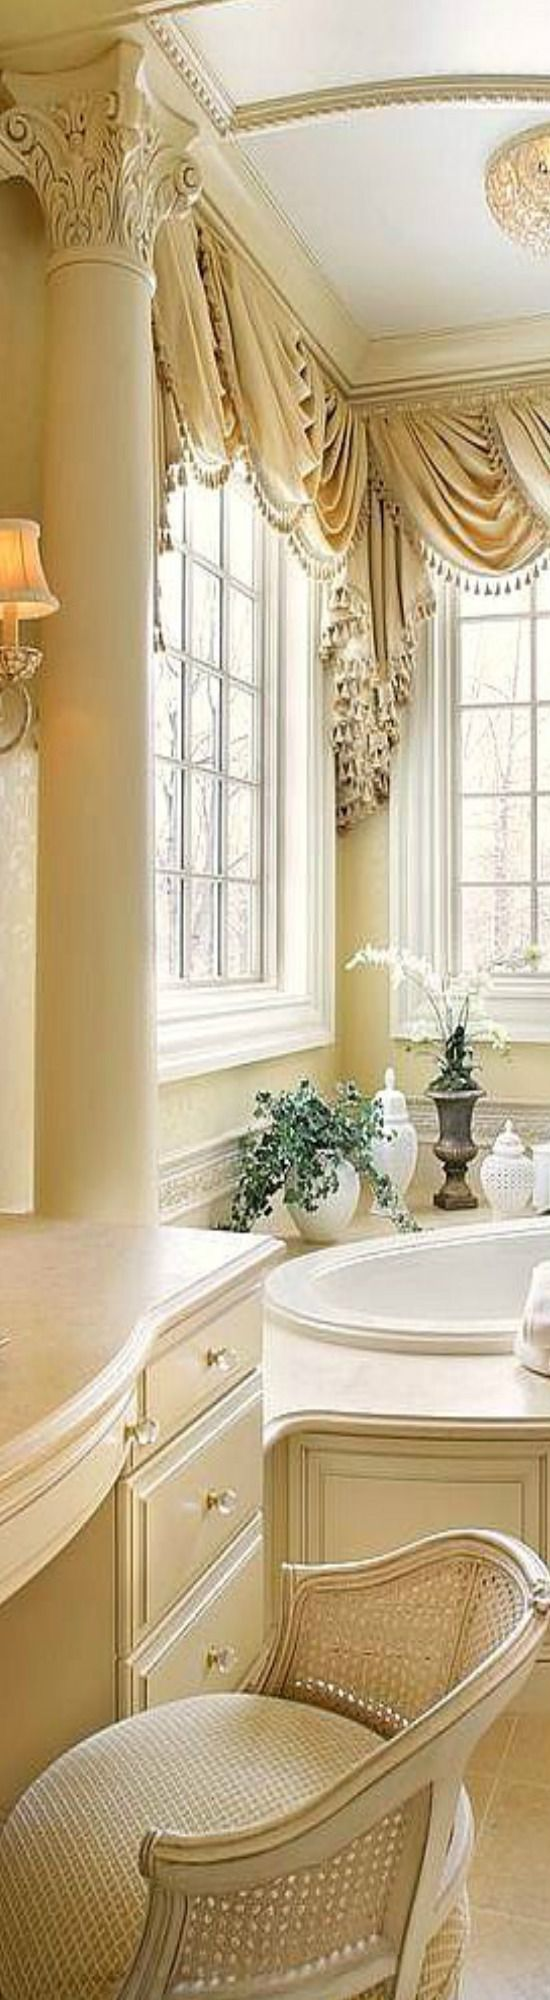 Luxury bathroom curtains - Bathroom Curtainsbathroom Windowsdownstairs Bathroomluxury